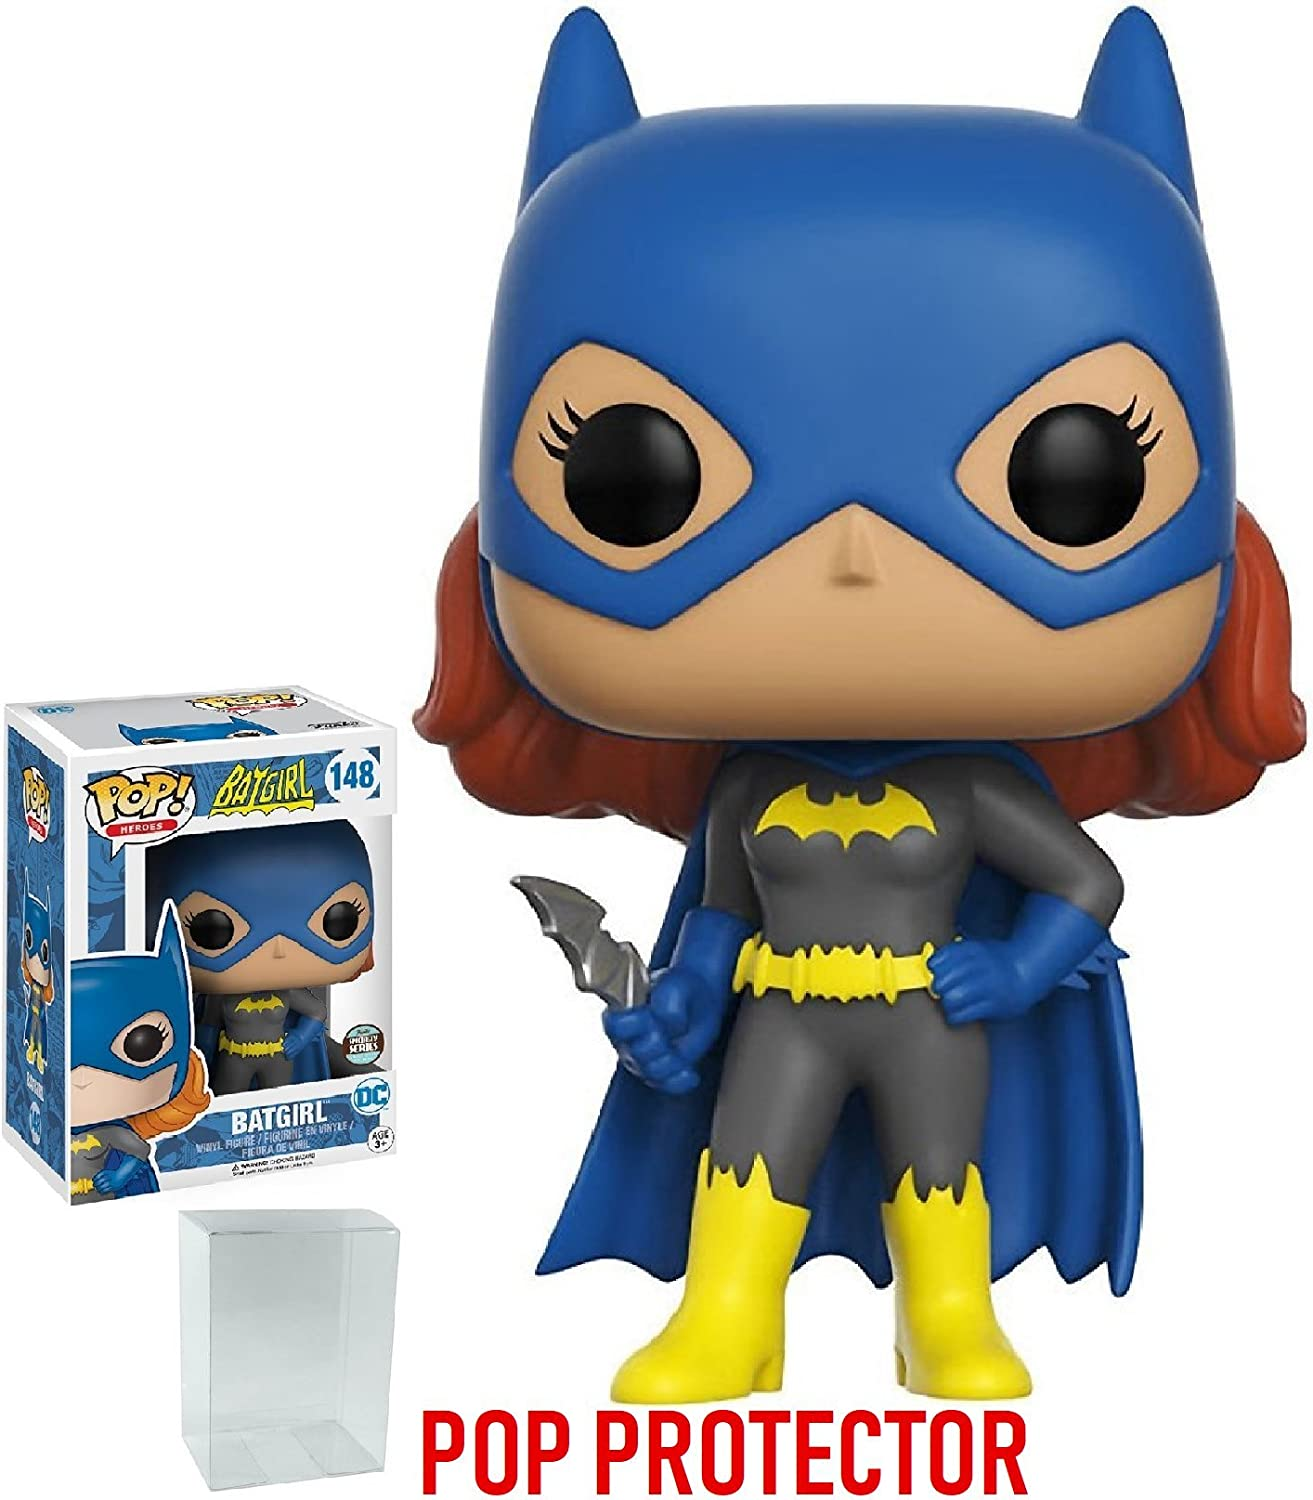 Funko Pop! DC Heroes Batgirl Specialty Series Vinyl Figure Bundled with Free Pop BOX PROTECTOR CASE